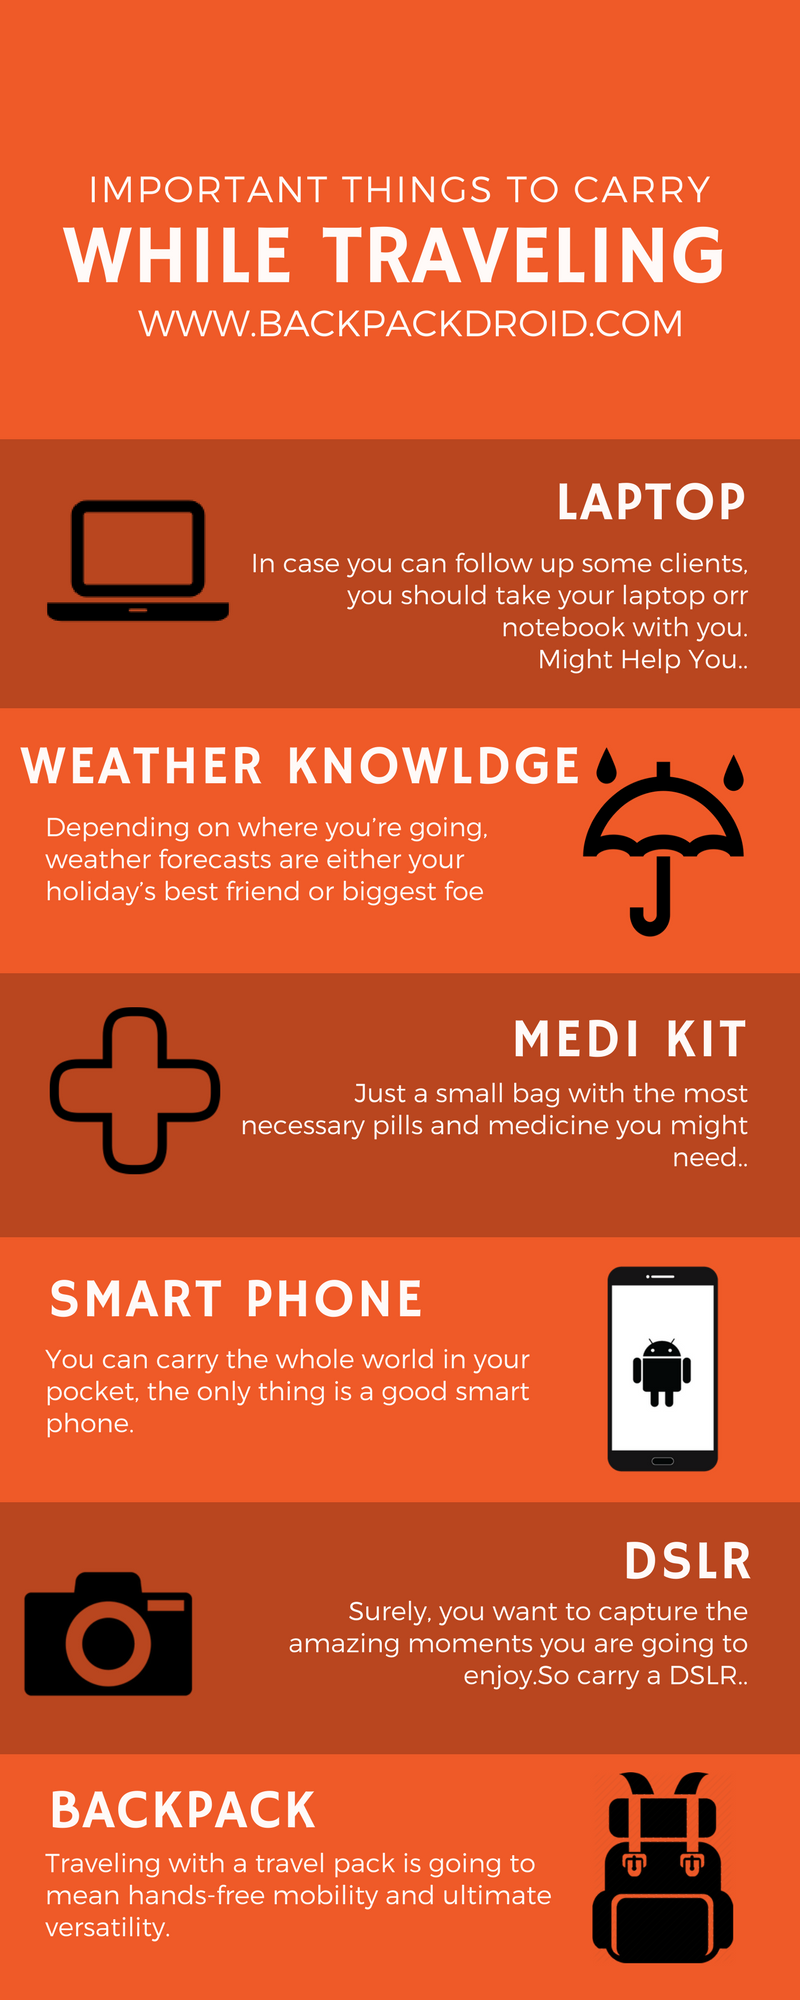 Six important things to carry while traveling [Infographic]